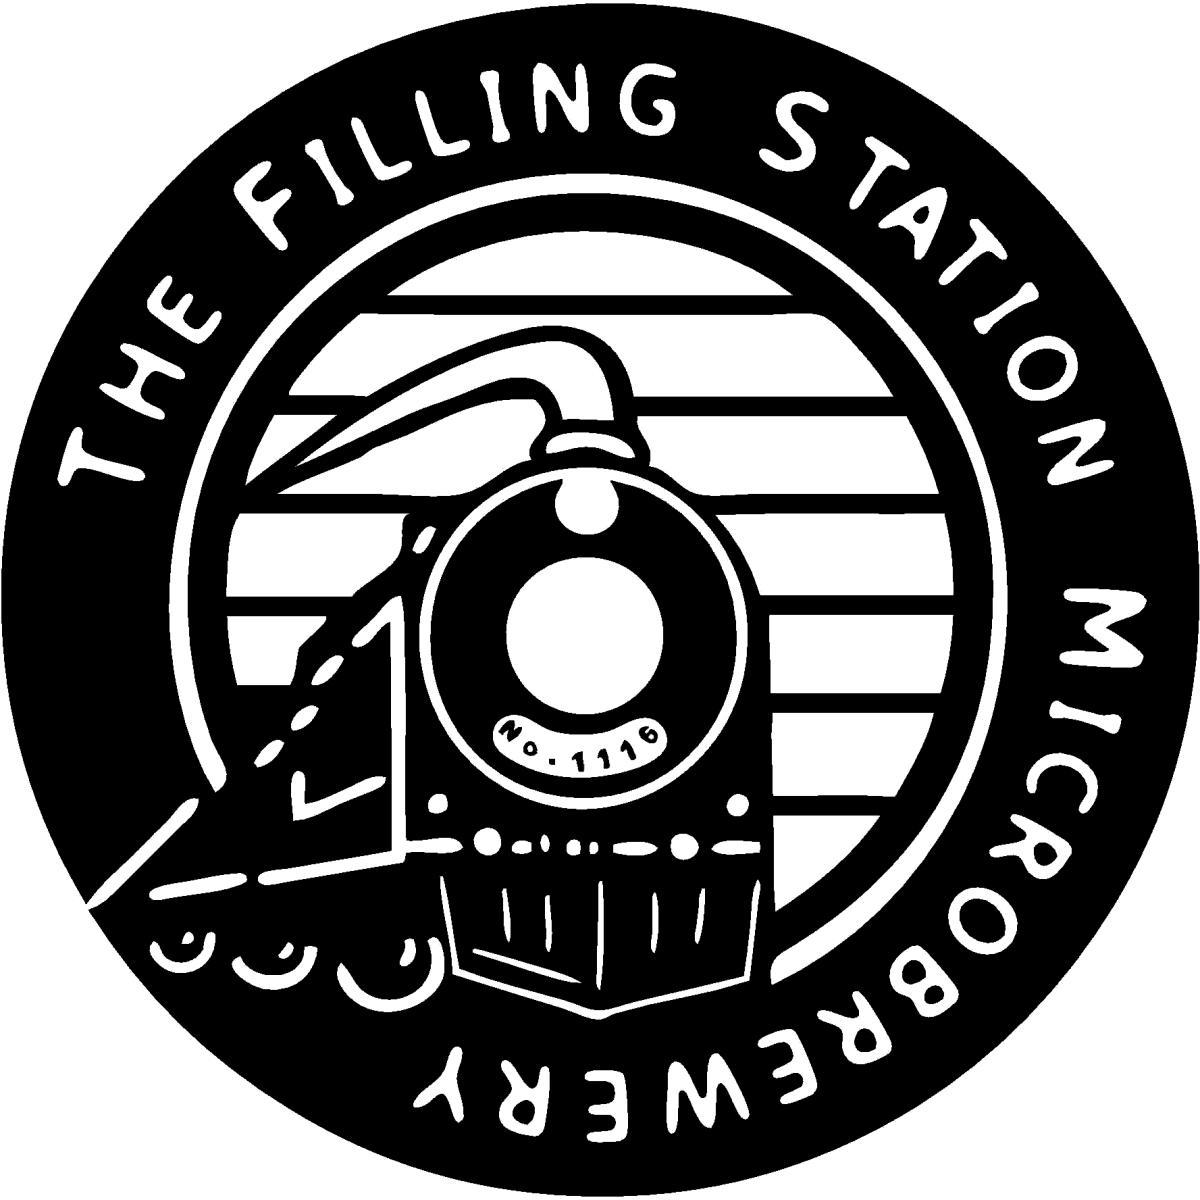 fillingstation.jpeg